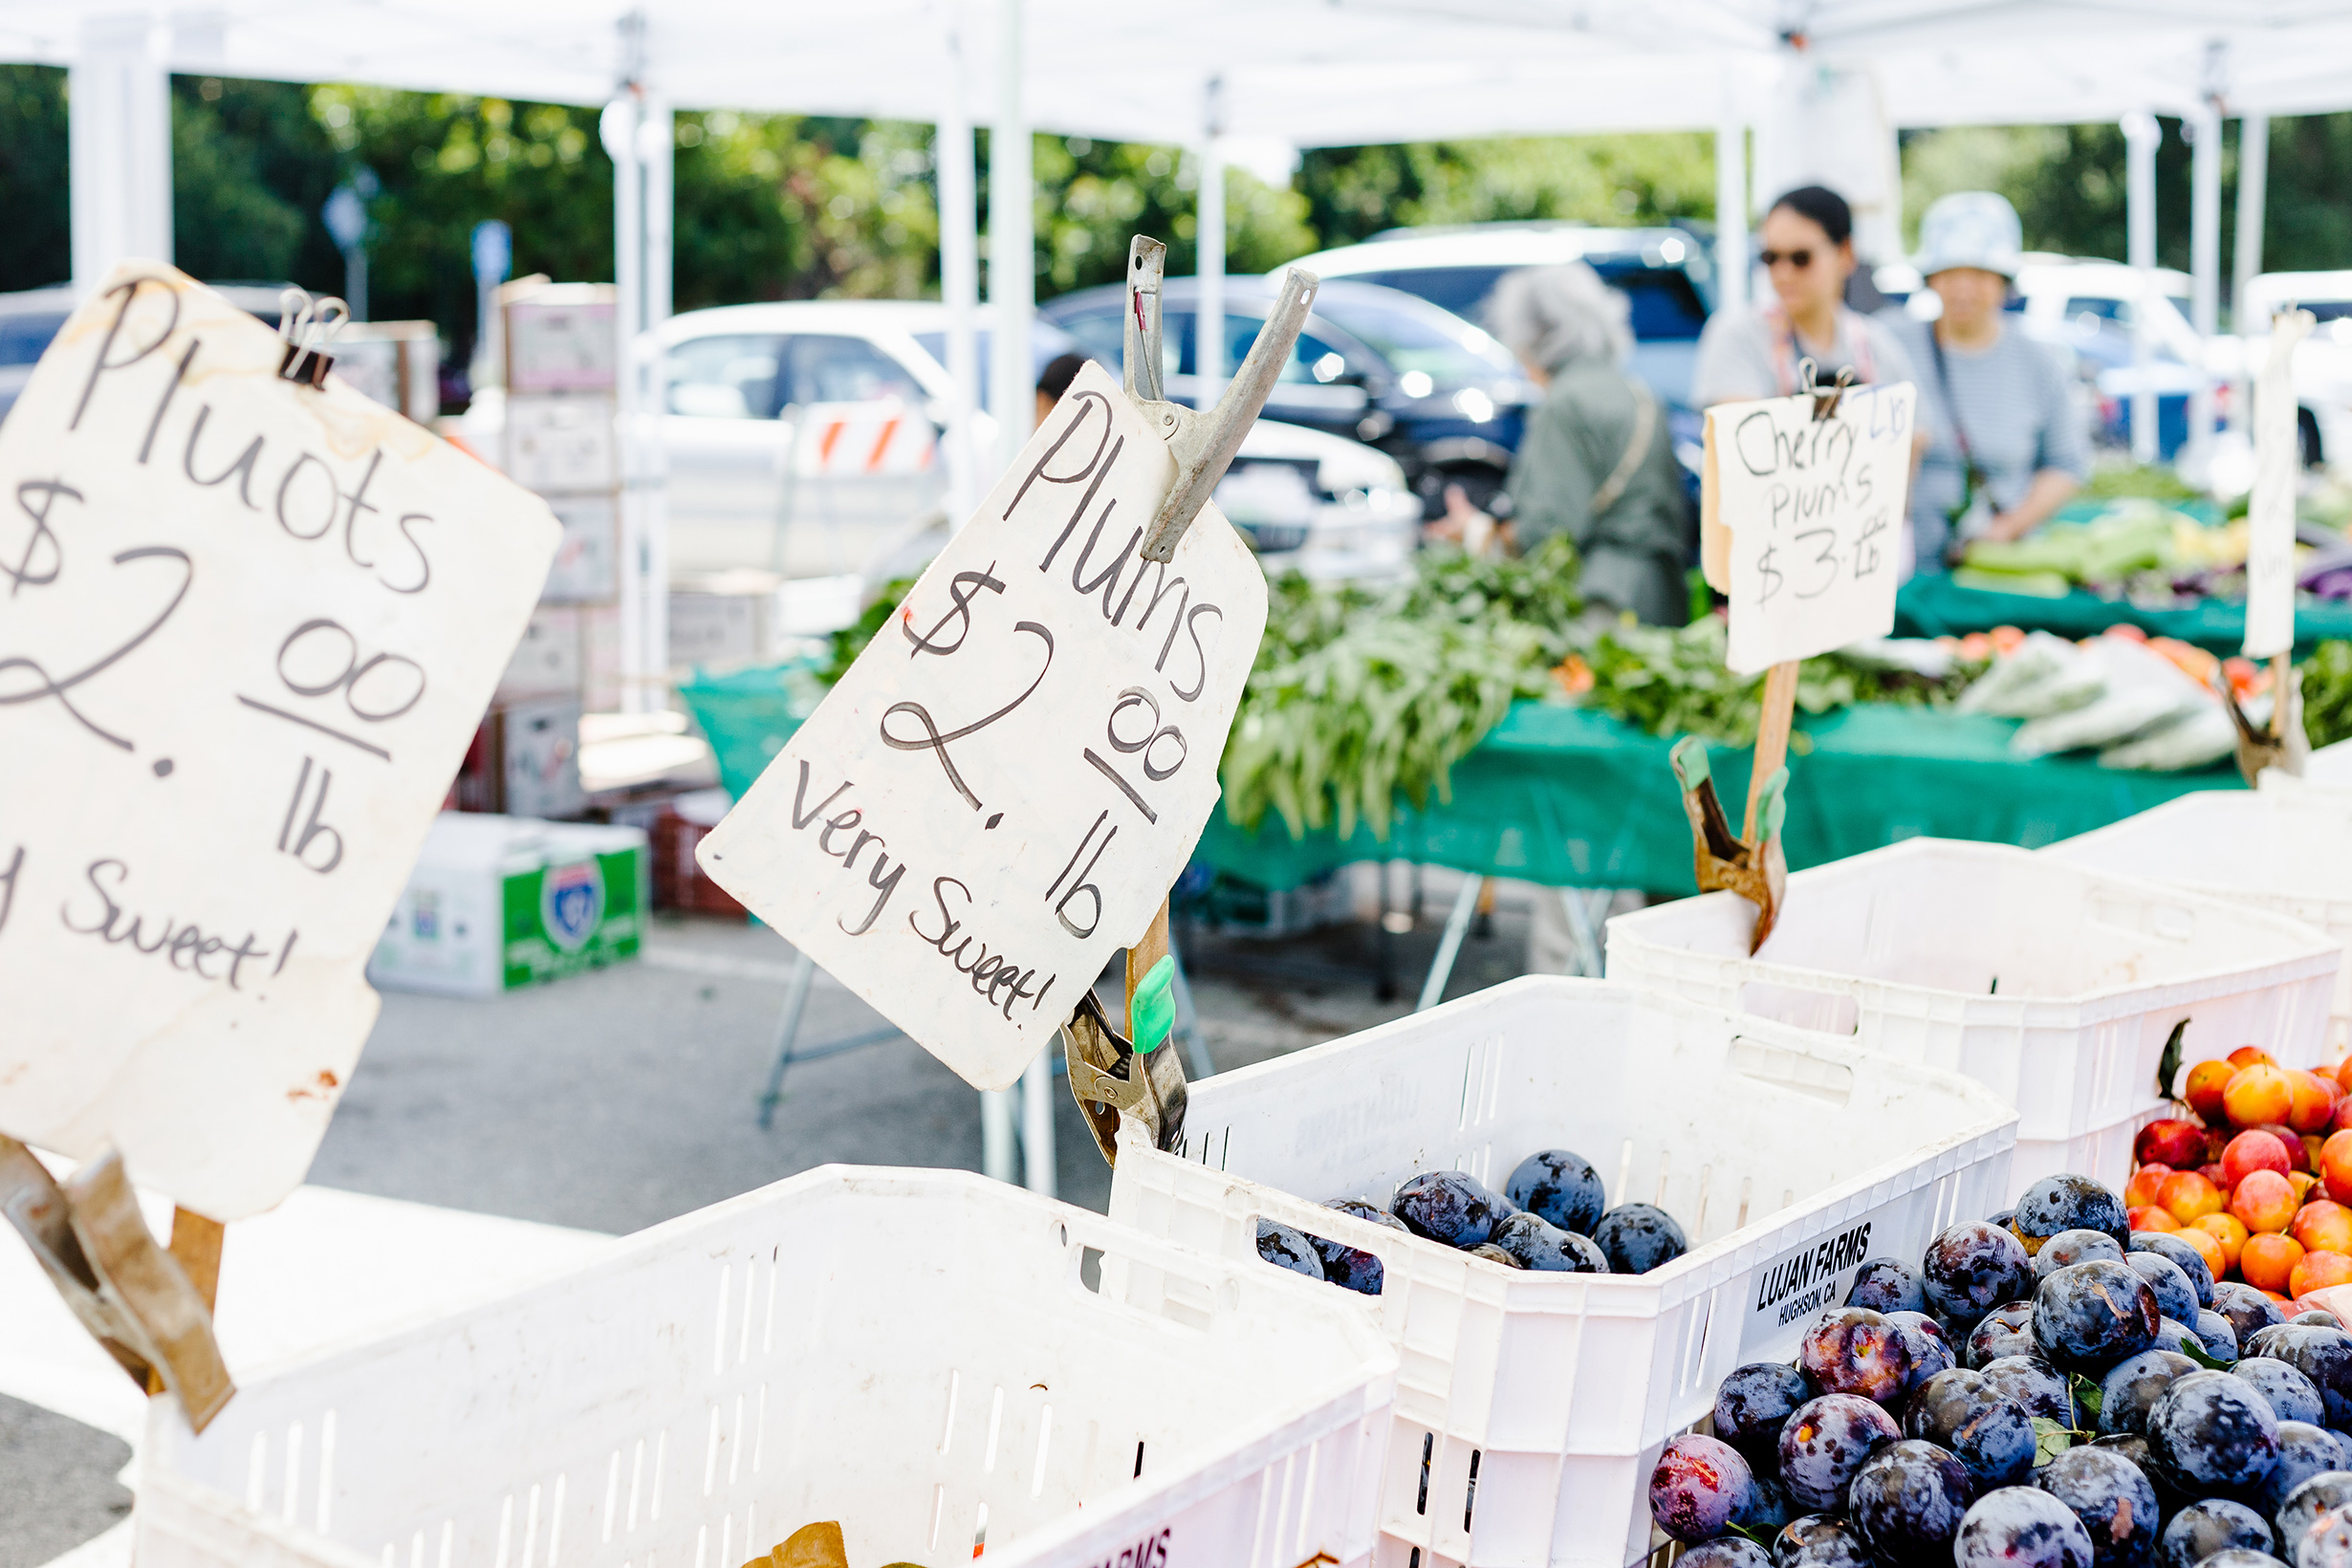 picture of blueberries and plums at a farmers market